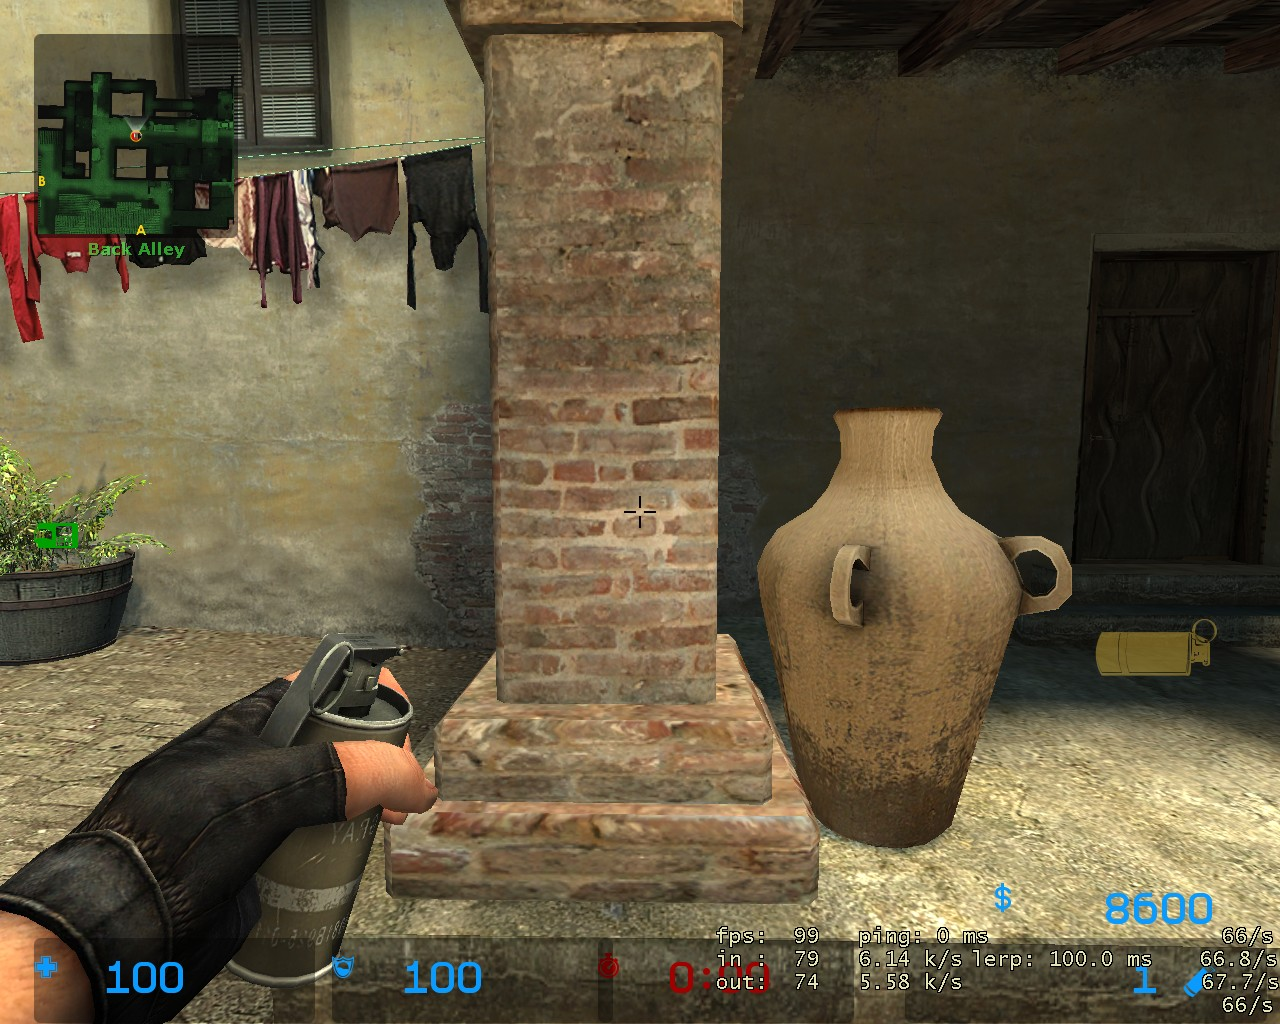 Ian's friend prime-de_inferno-pit-smoke-positioning-jpg